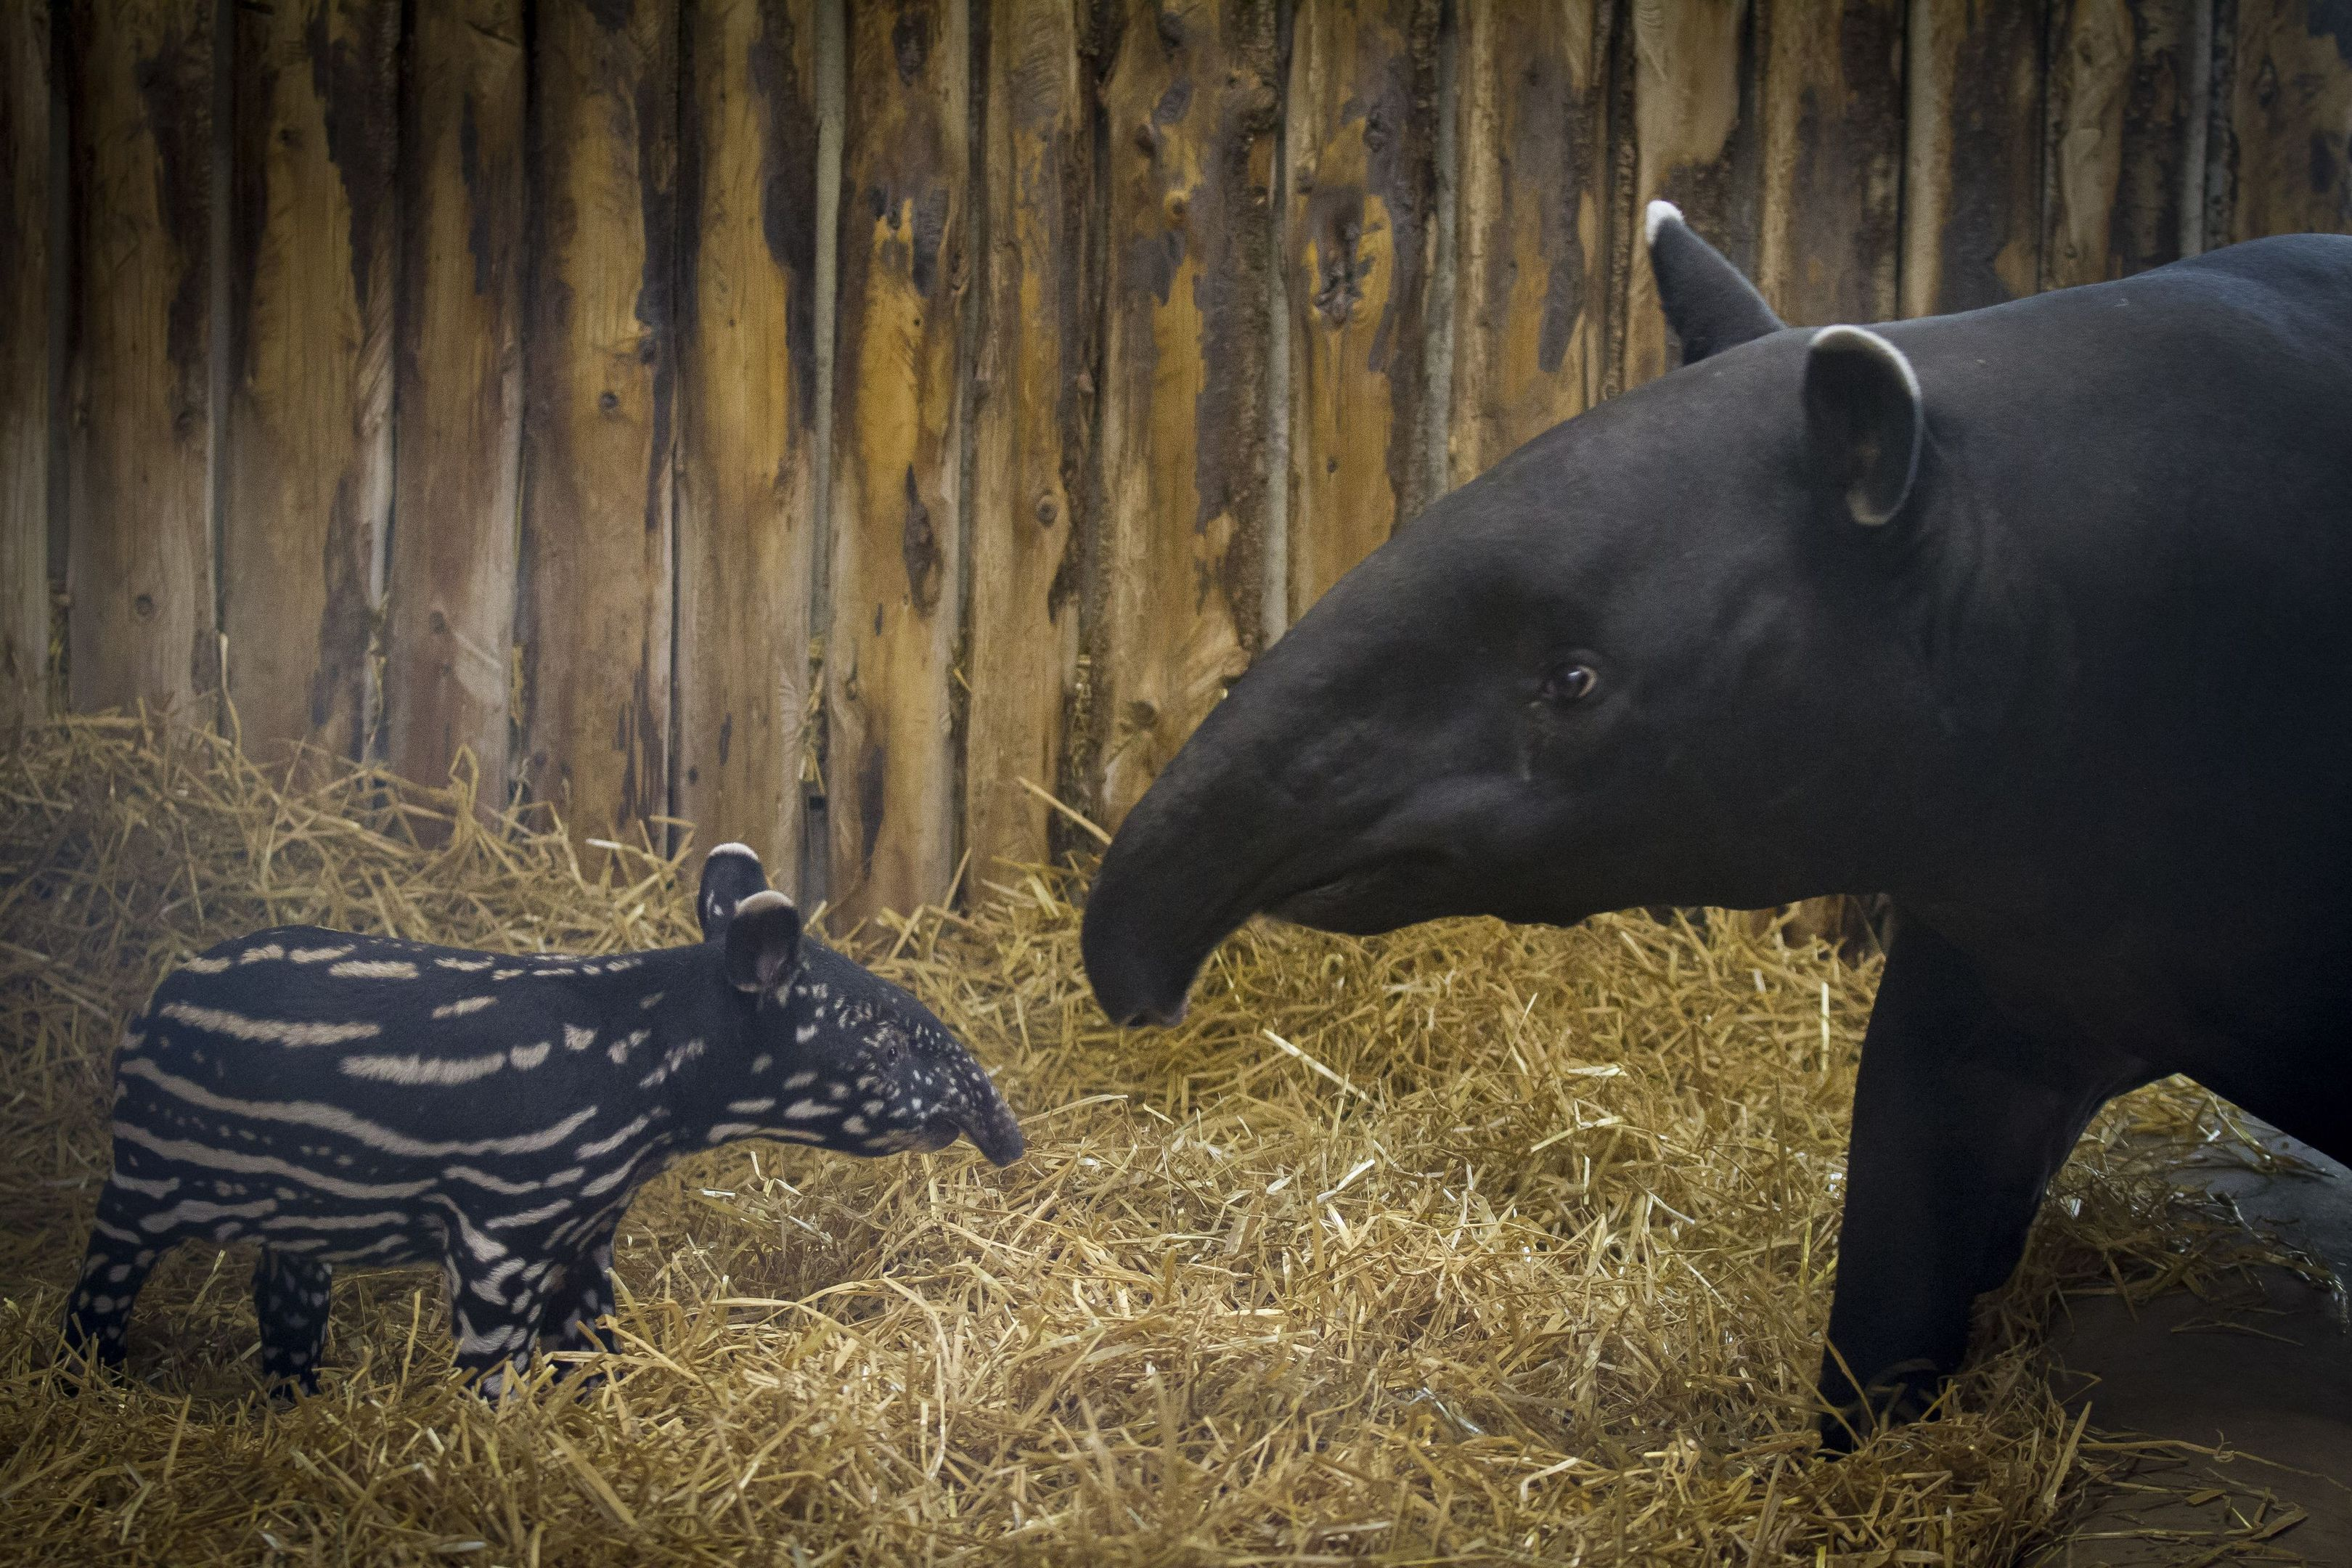 The male calf was born on Thursday May 19 and keepers said he will help the fight to save his species from extinction.